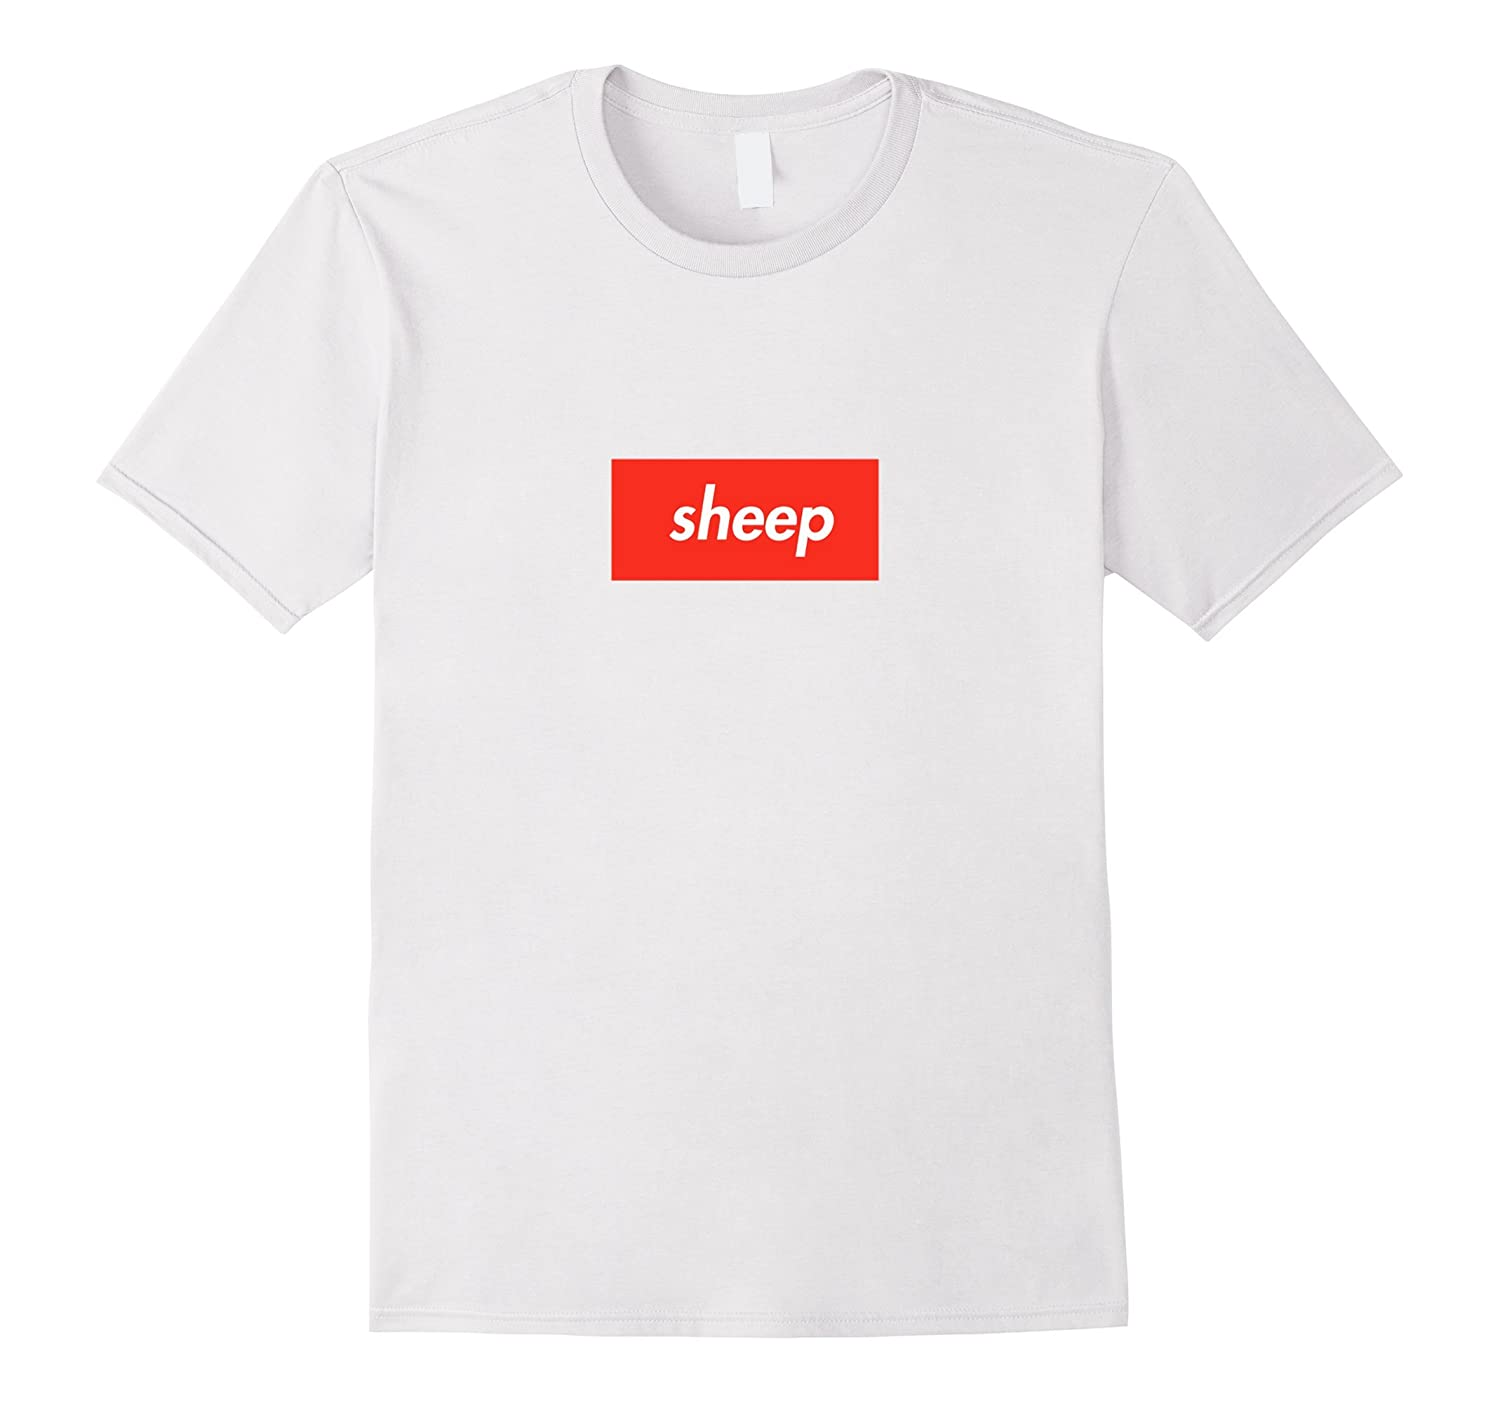 Sheep T-Shirt - Red Box White Letters-FL